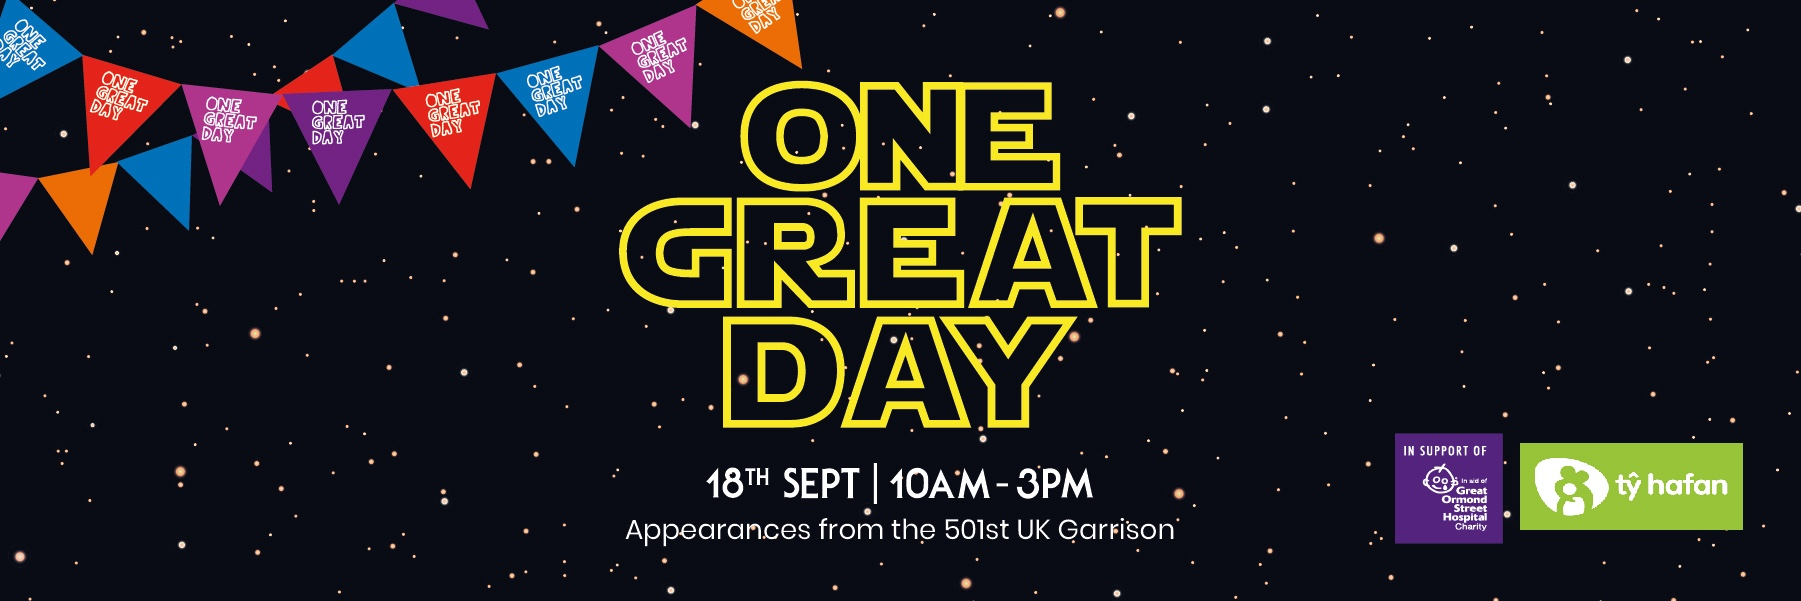 One Great Day Event